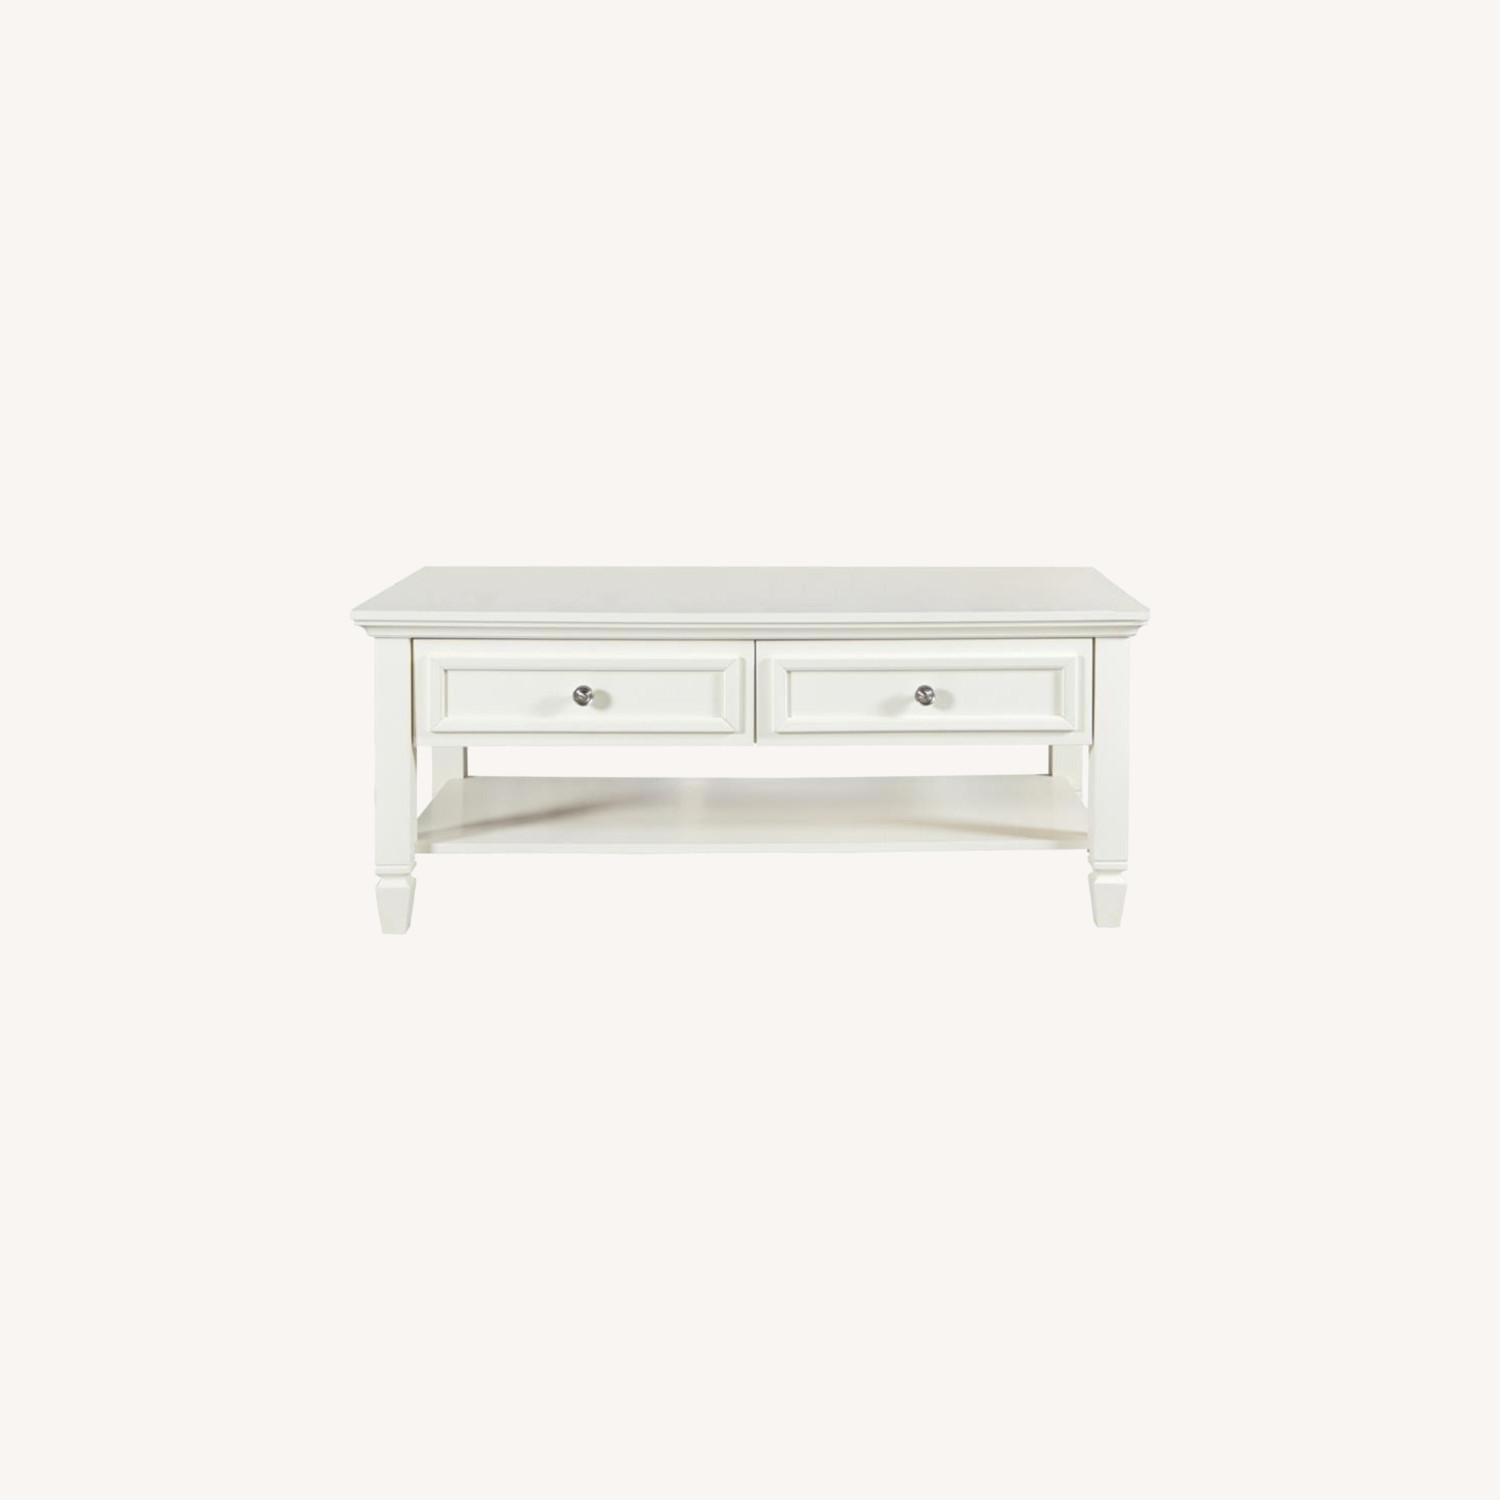 Sofa Table In White/Brushed Nickel - image-4